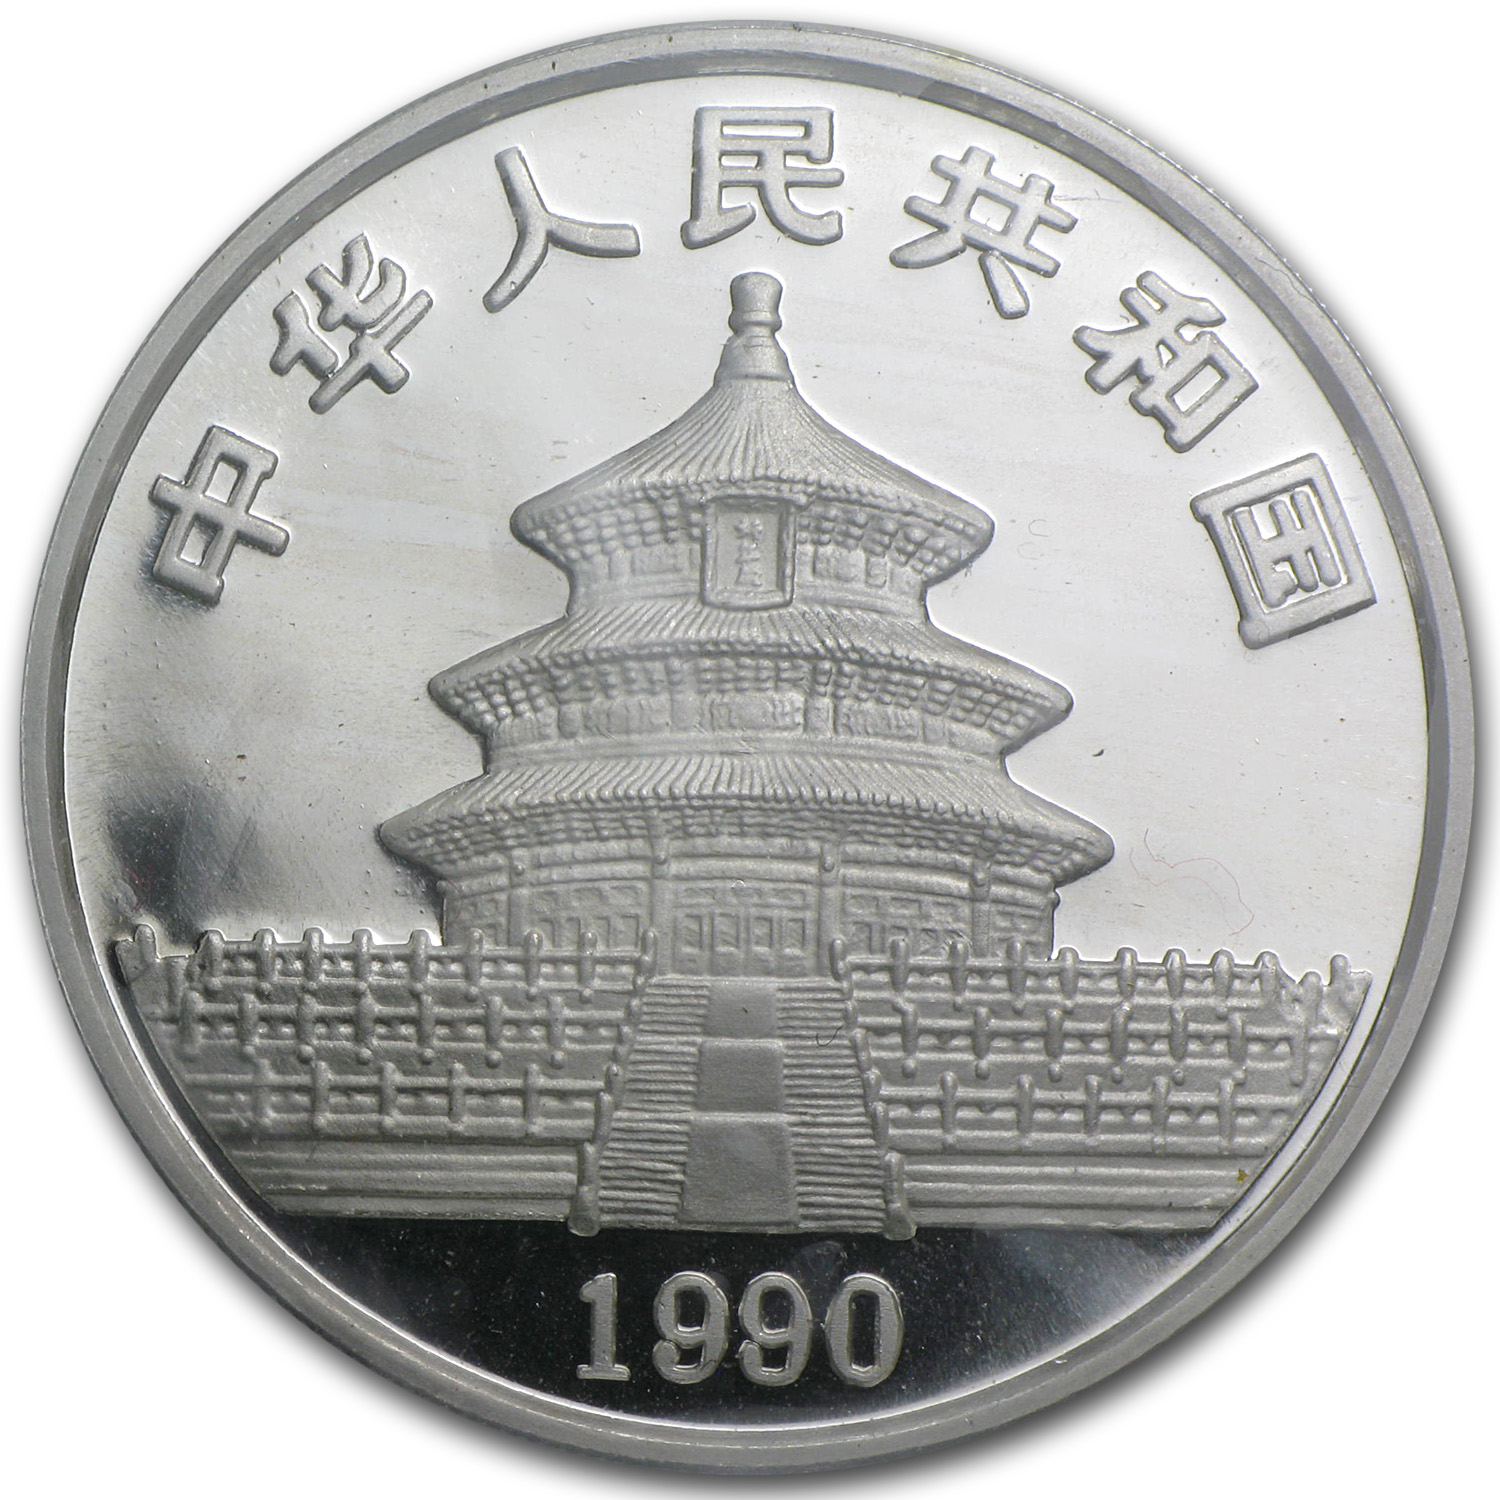 1990 China 1 oz Silver Panda Large Date BU (Sealed)